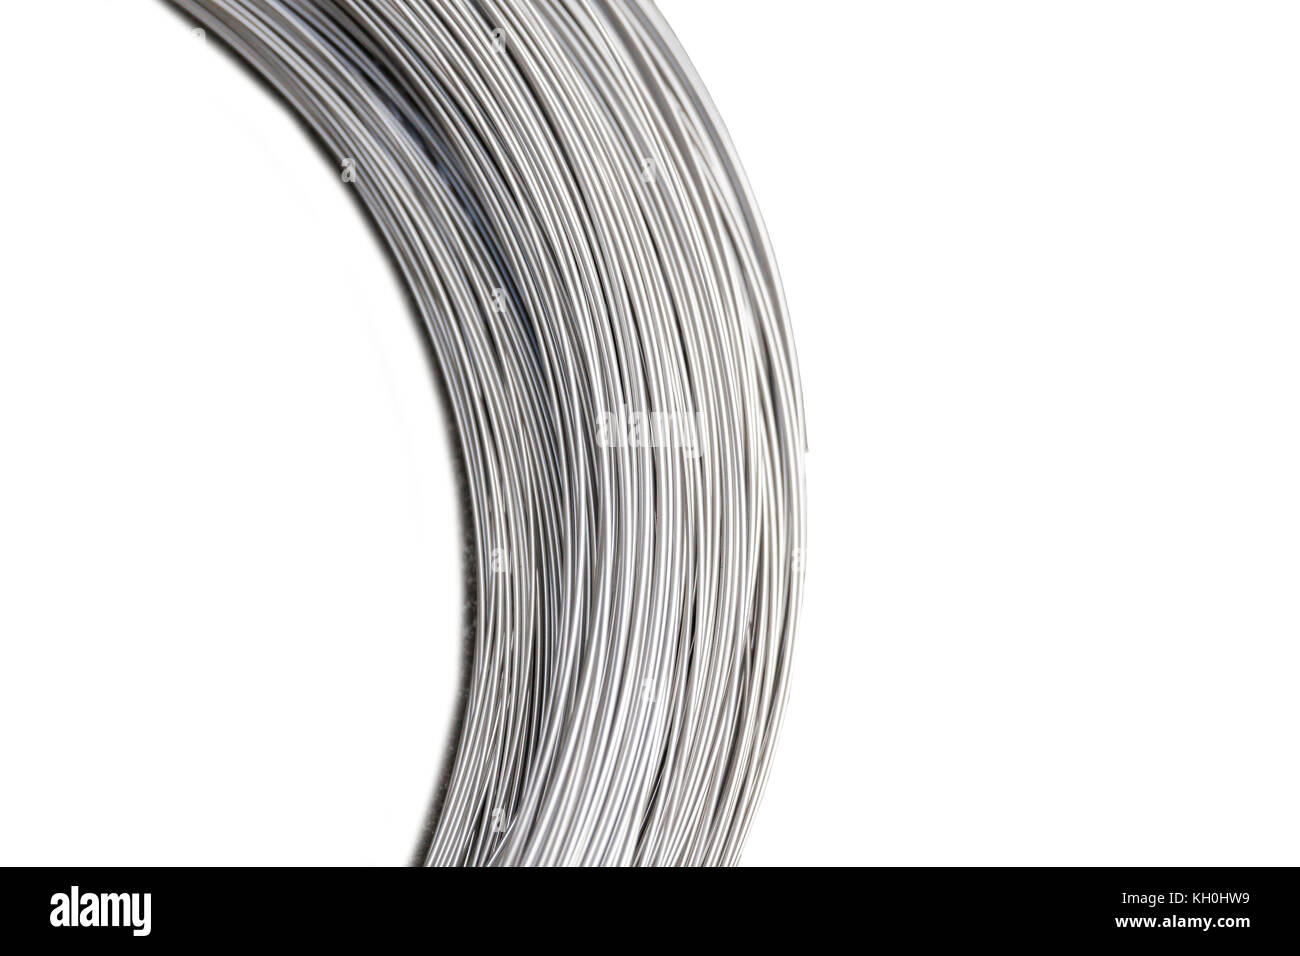 Silver Wire Coil Stock Photos & Silver Wire Coil Stock Images - Alamy